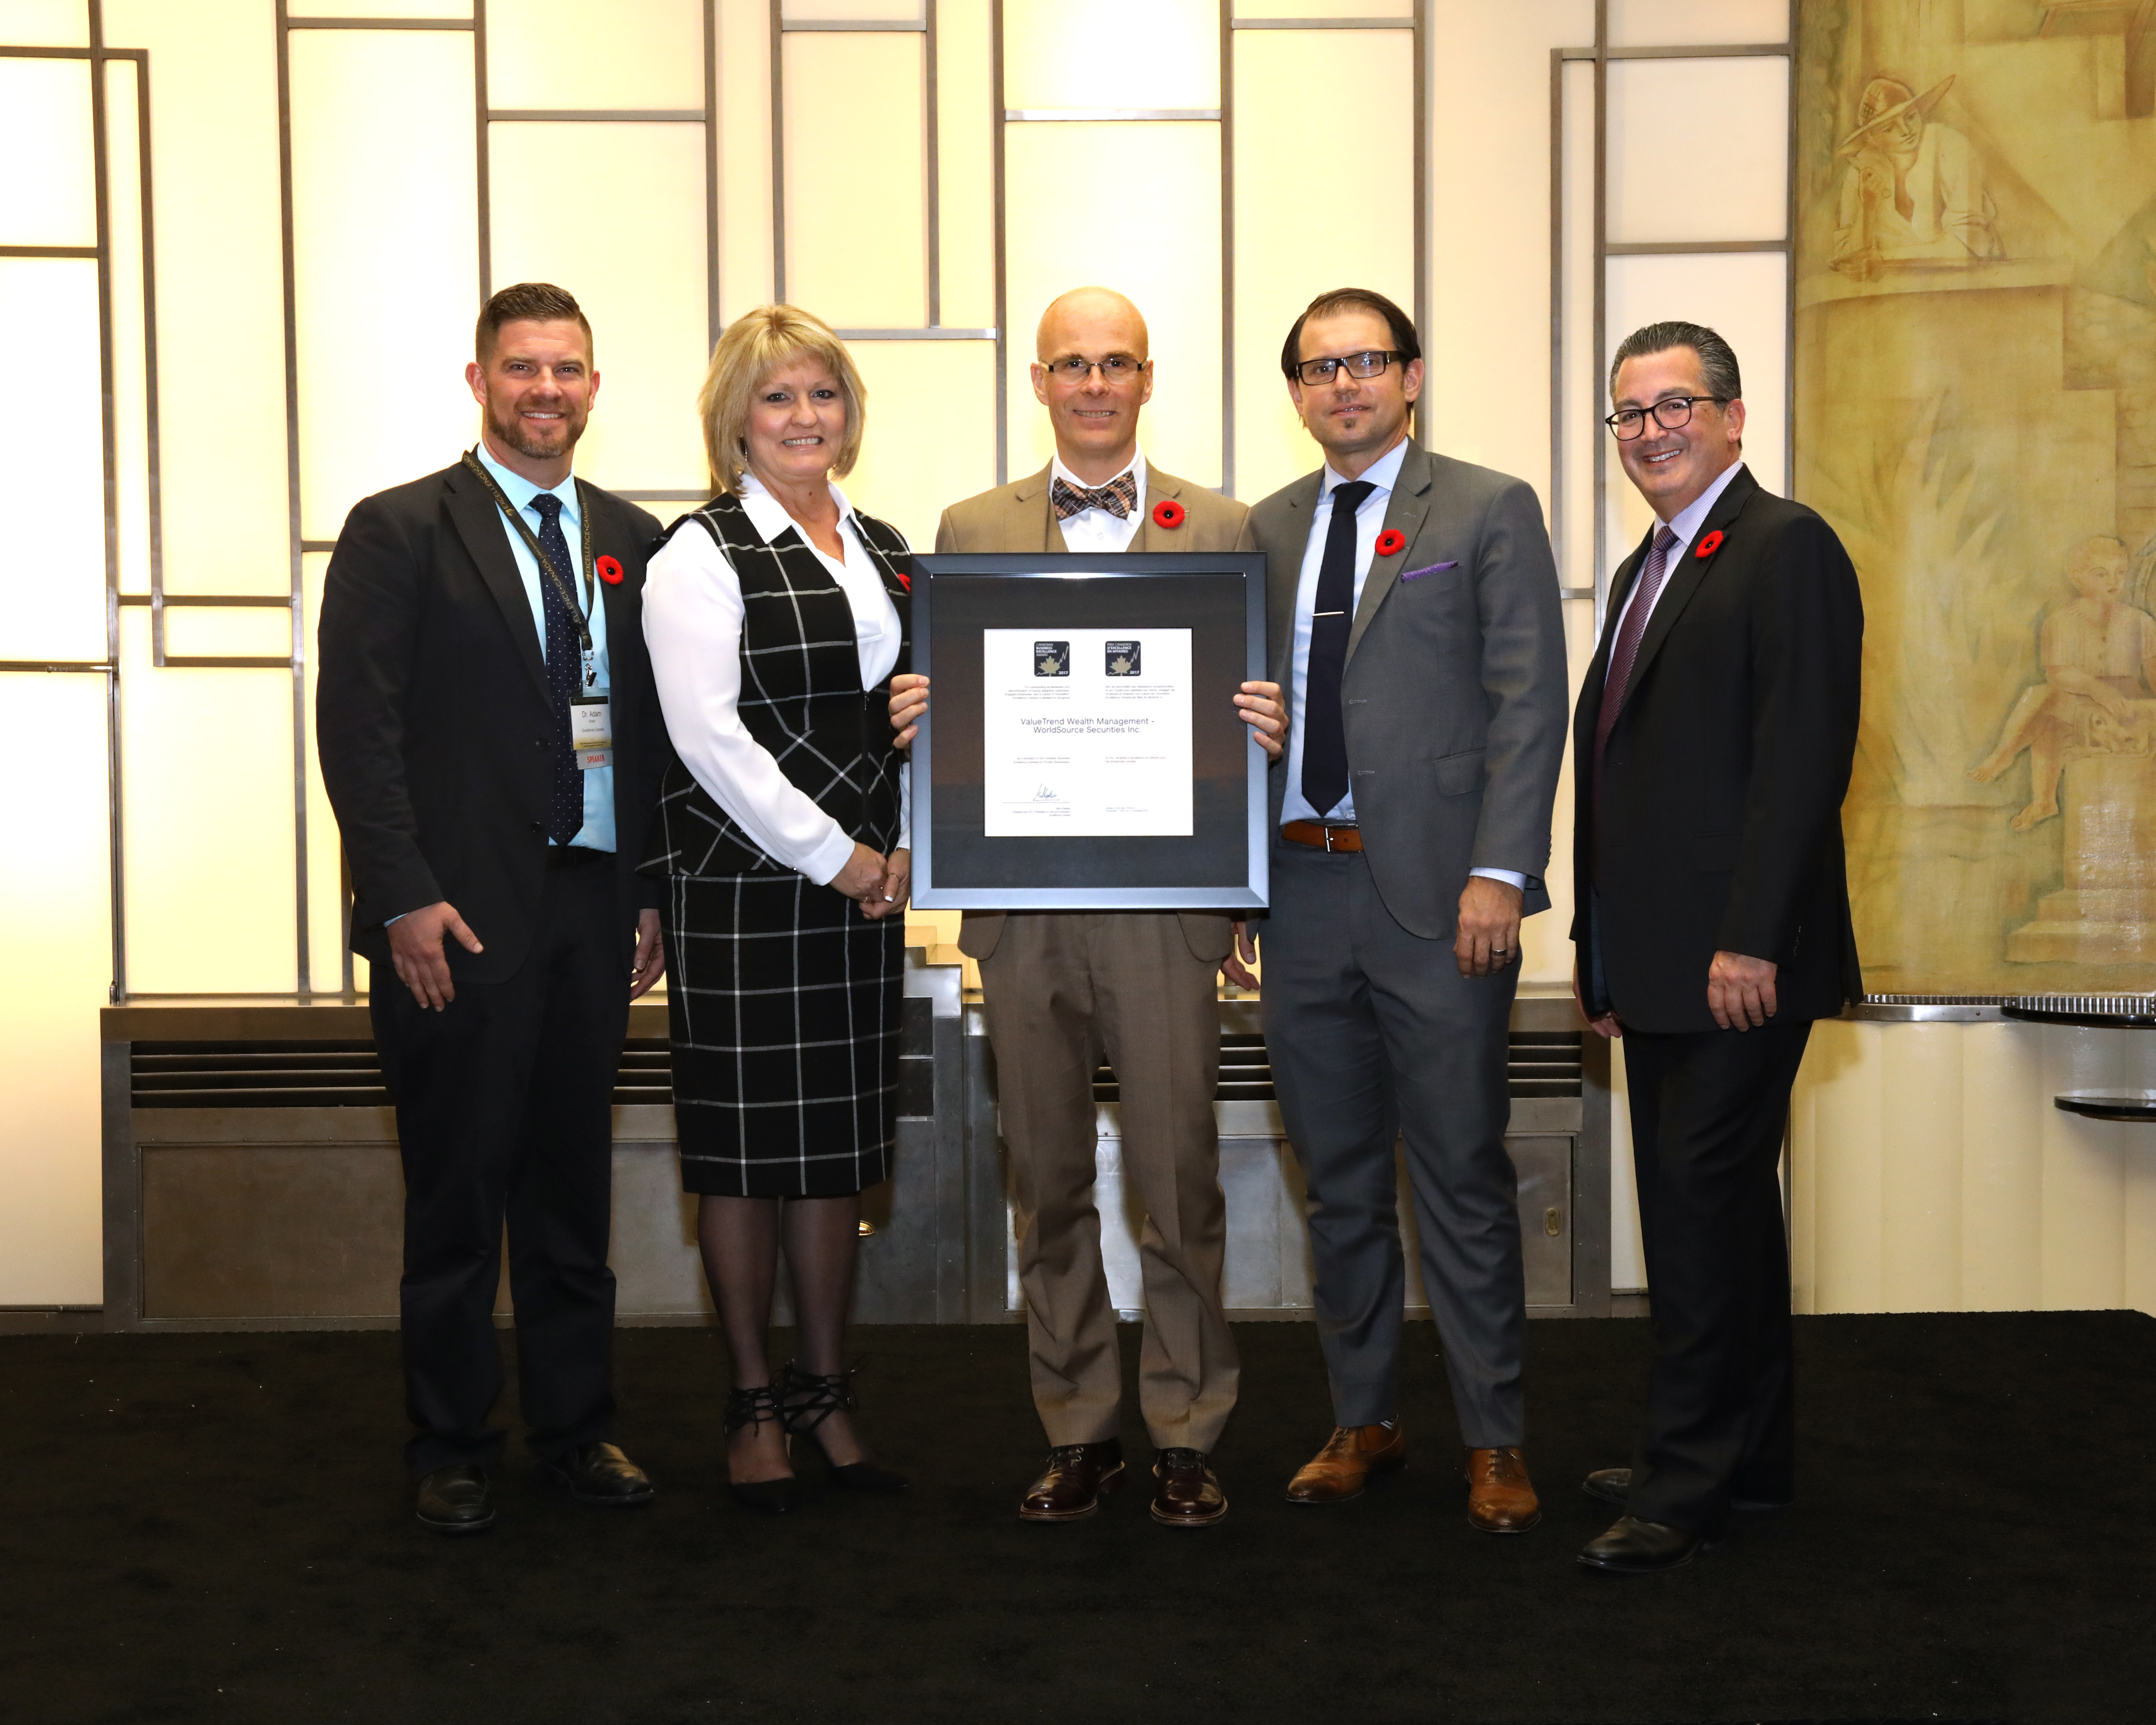 The ValueTrend Wealth Management team shown receiving the 2017 Canadian Business Excellence Award